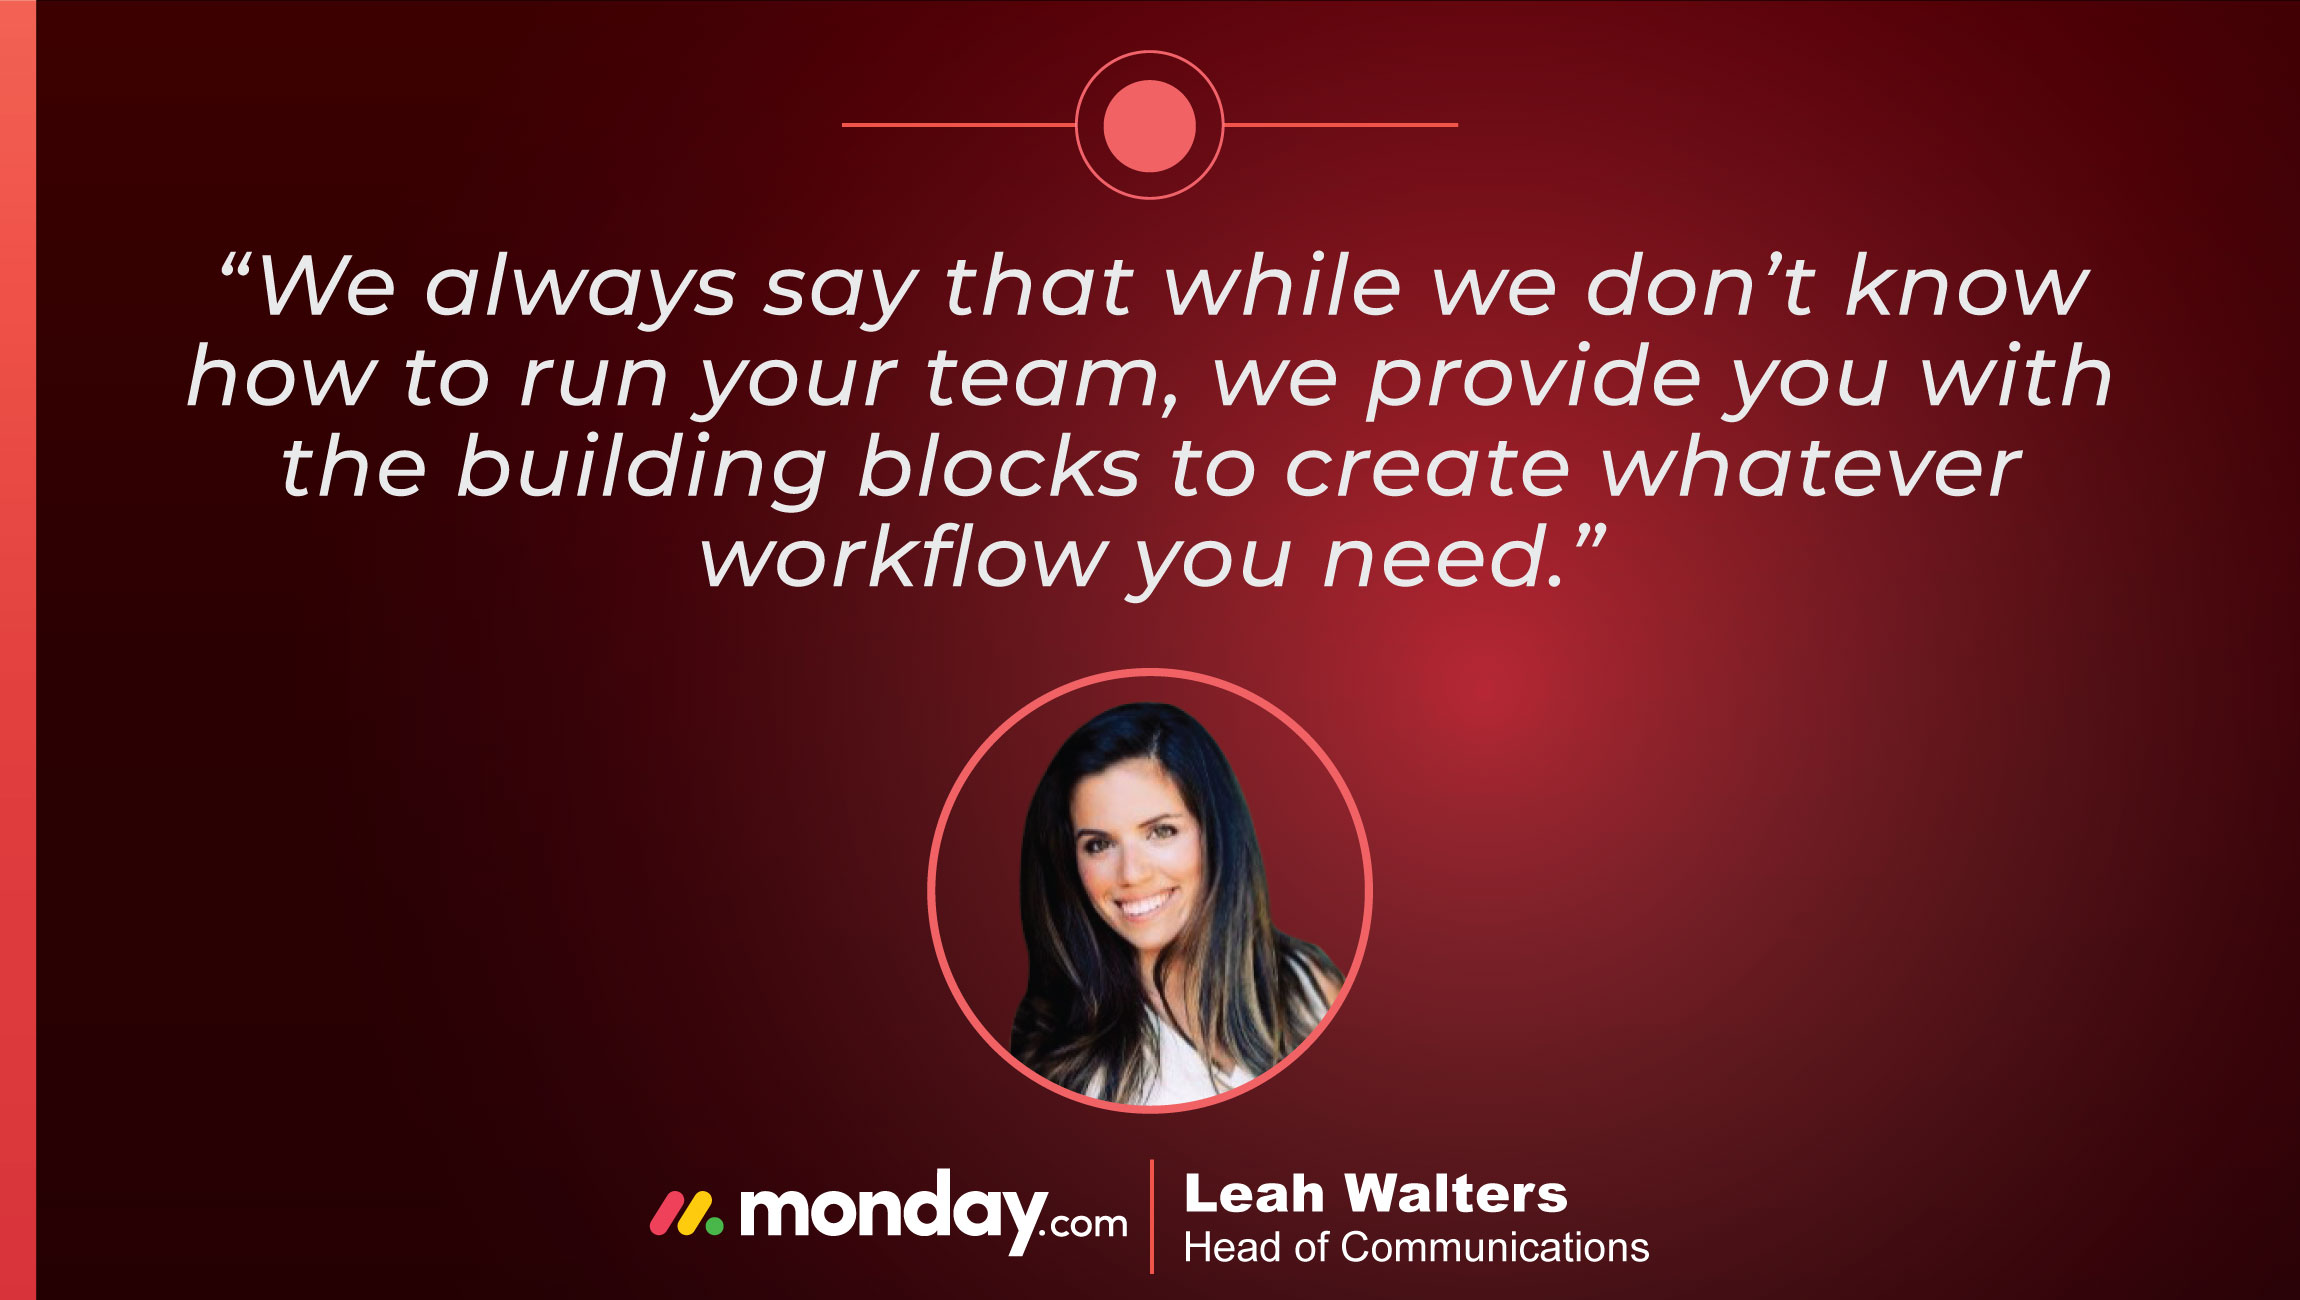 TechBytes with Leah Walters, Head of Communications at monday.com